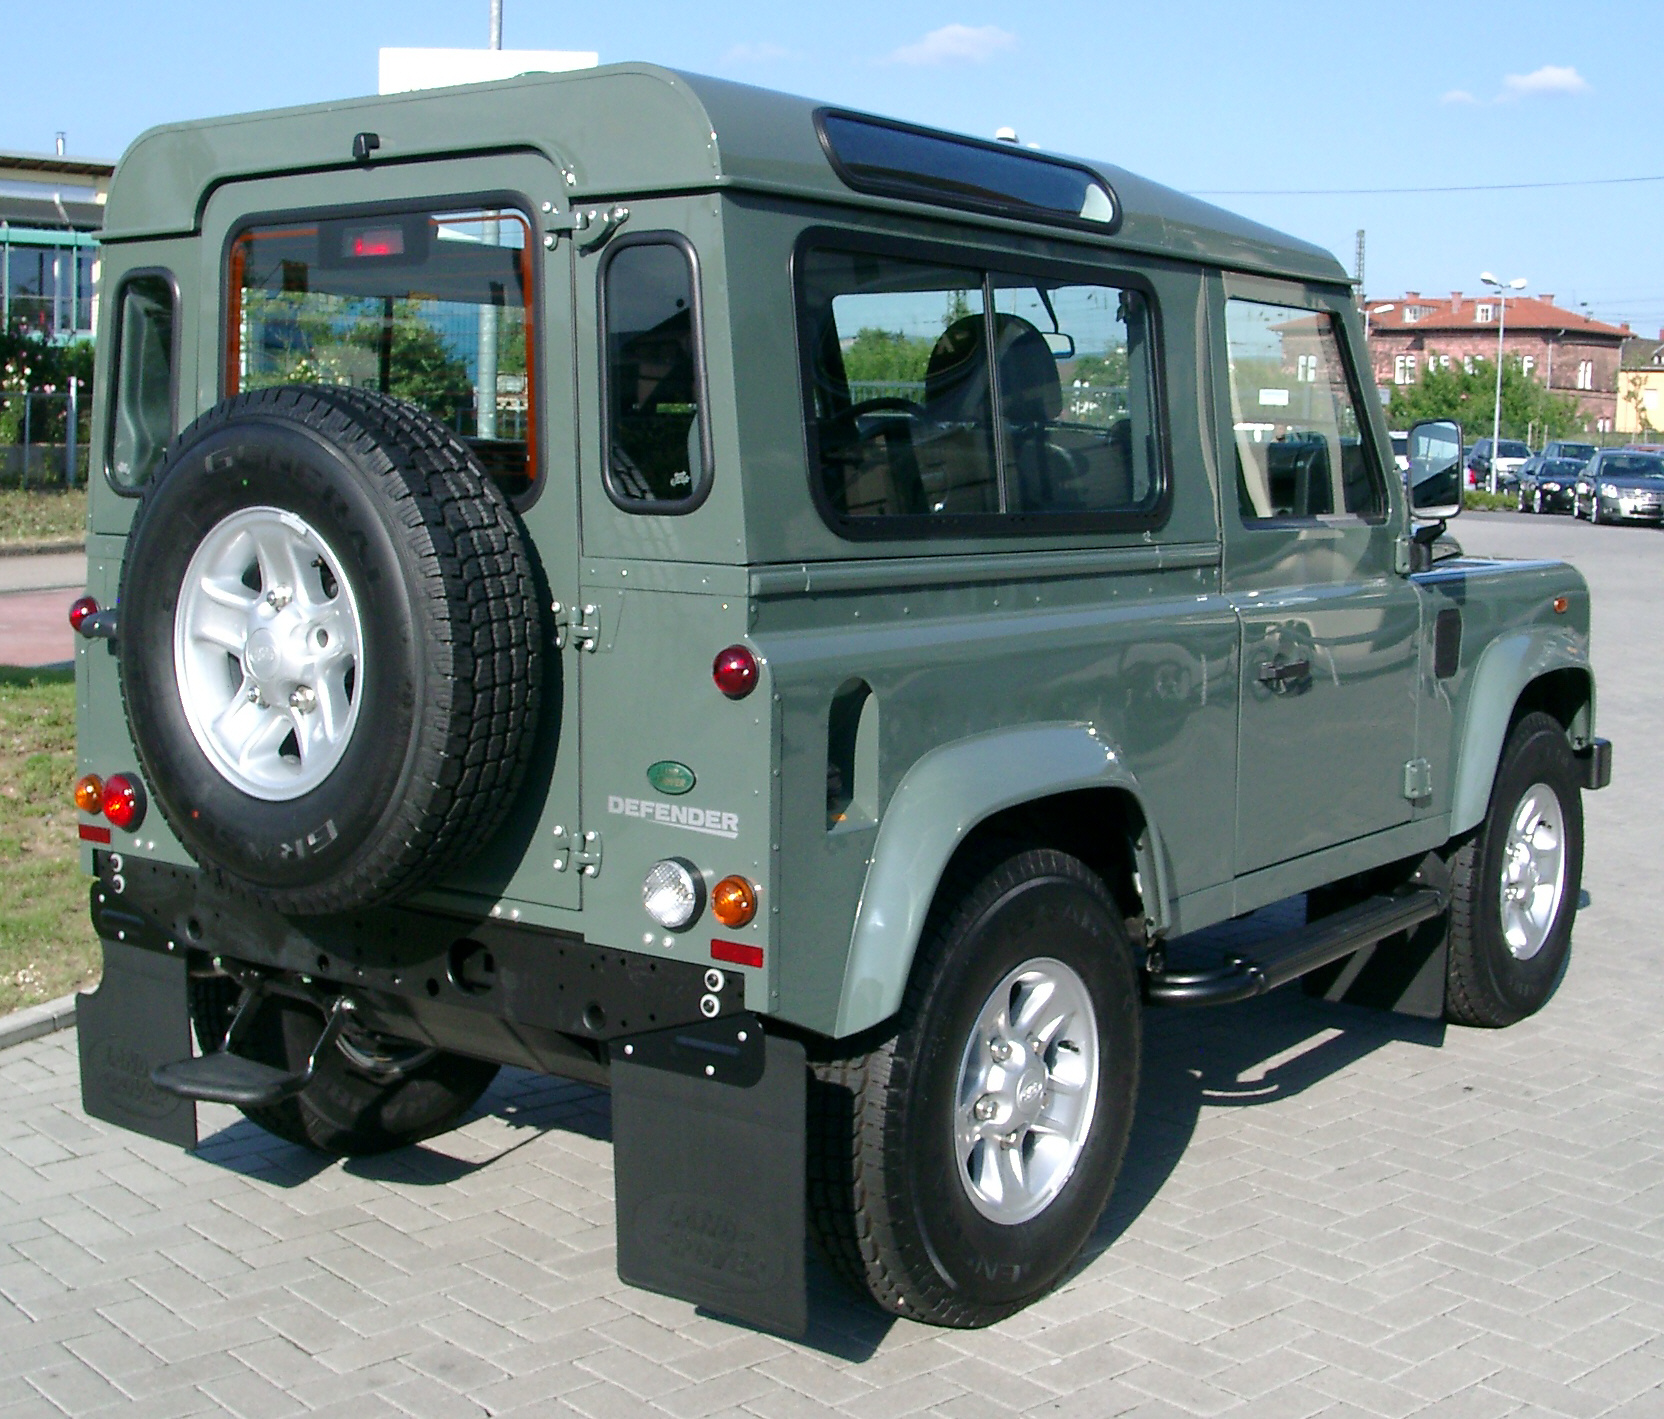 File:Land Rover Defender Rear 20070518.jpg